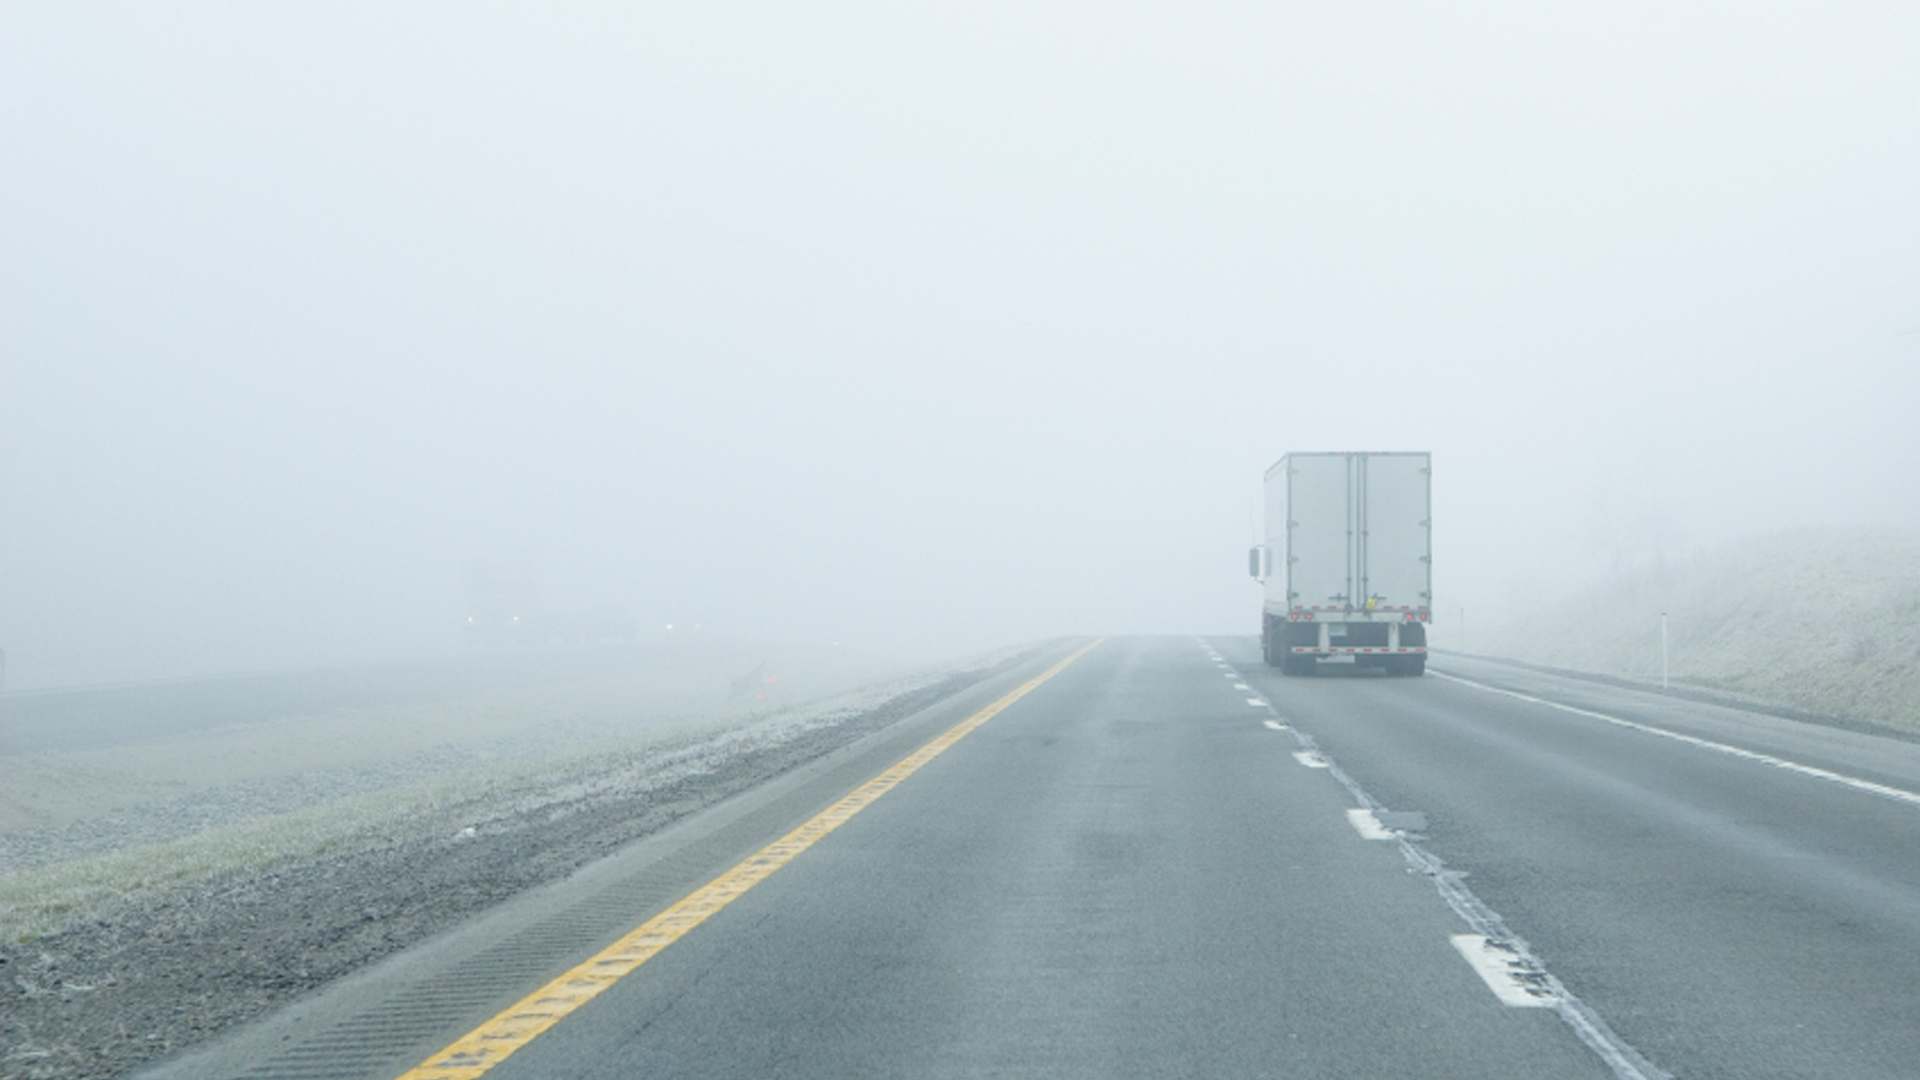 How to Improve Visibility While on the Road, Part 1 of 2